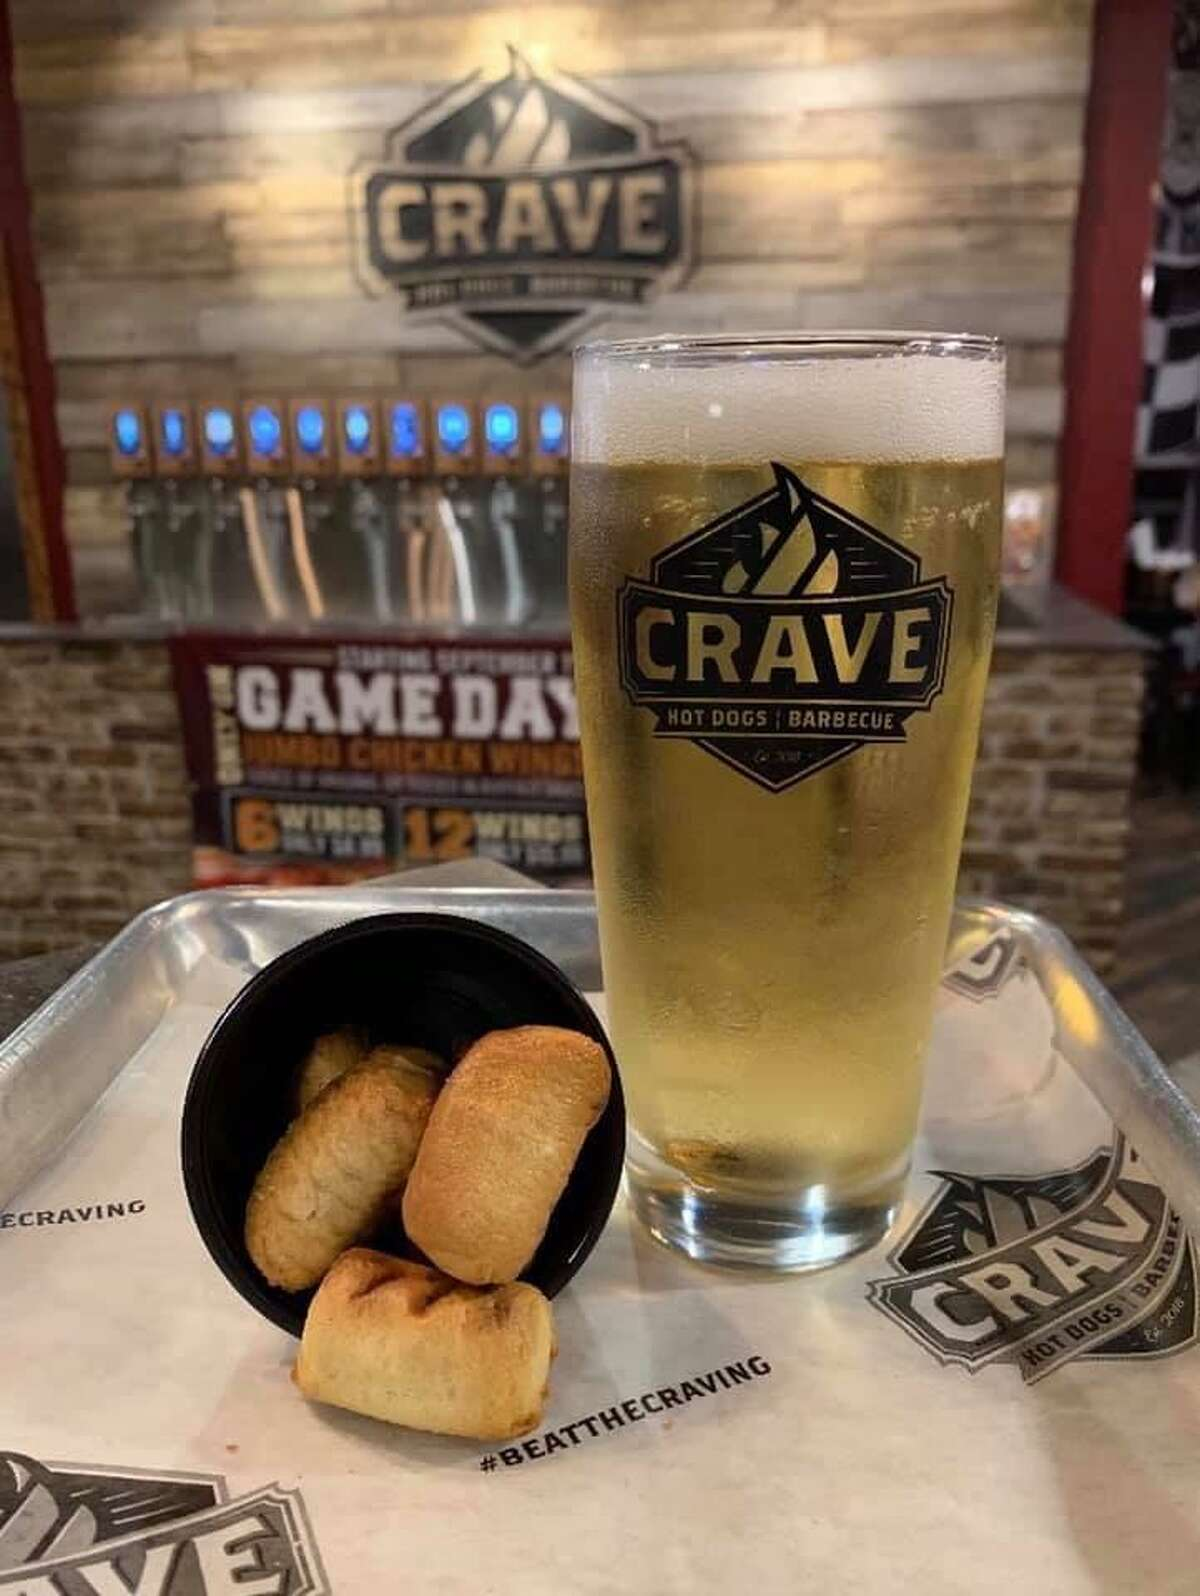 Crave Hot Dogs & Barbecue has a location in Westlake Marketplace at 14303 E. Sam Houston Parkway N.